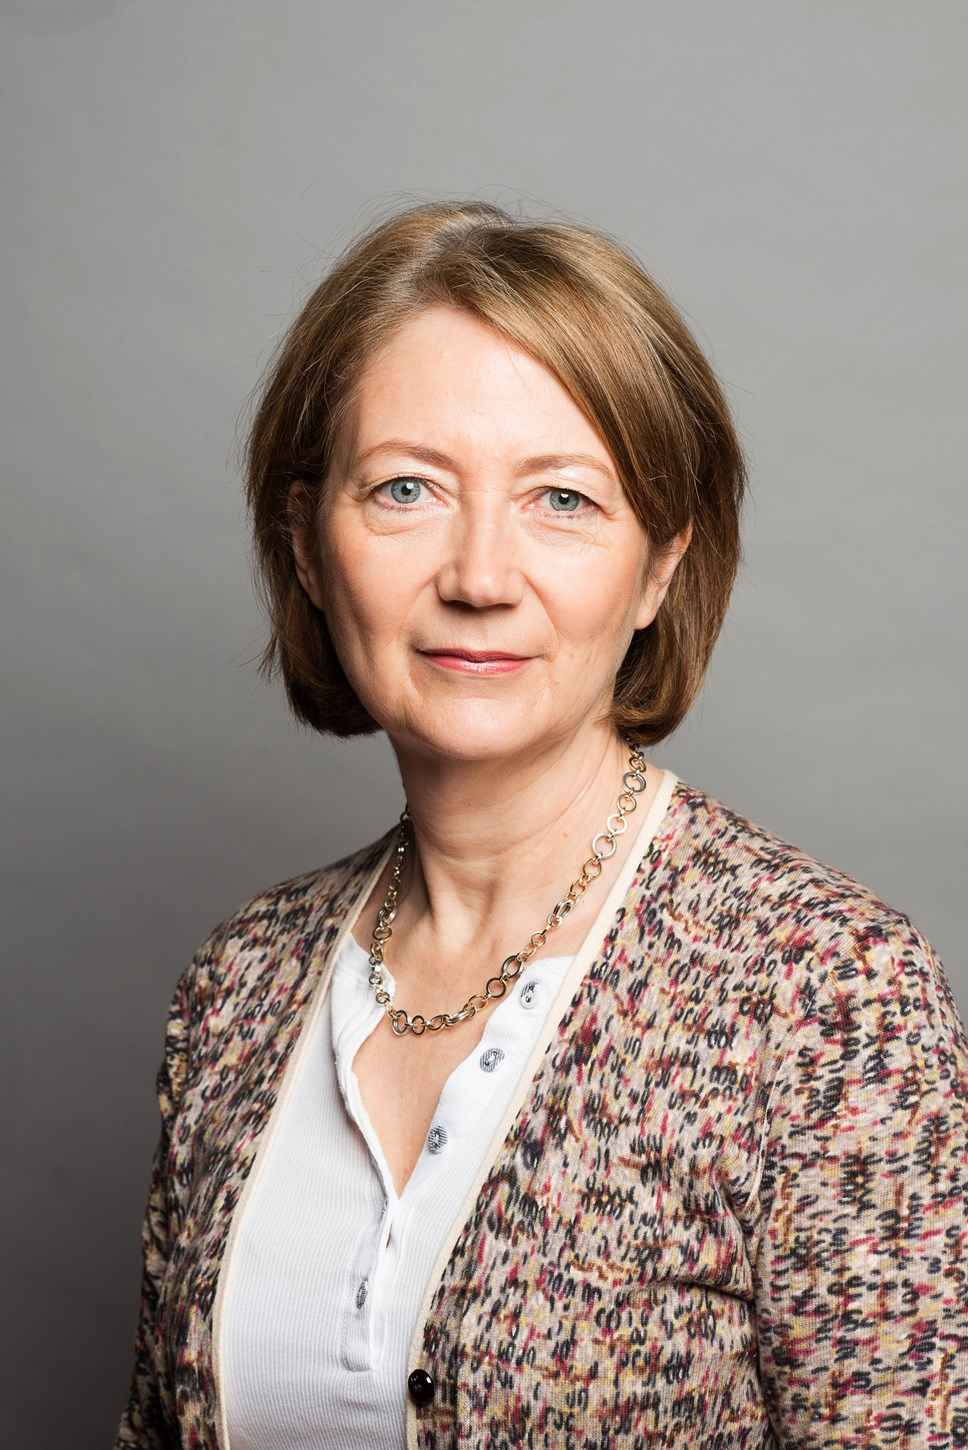 Chief Executive, Lesley Seary to step down after 8 years at Islington Council: Lesley Seary